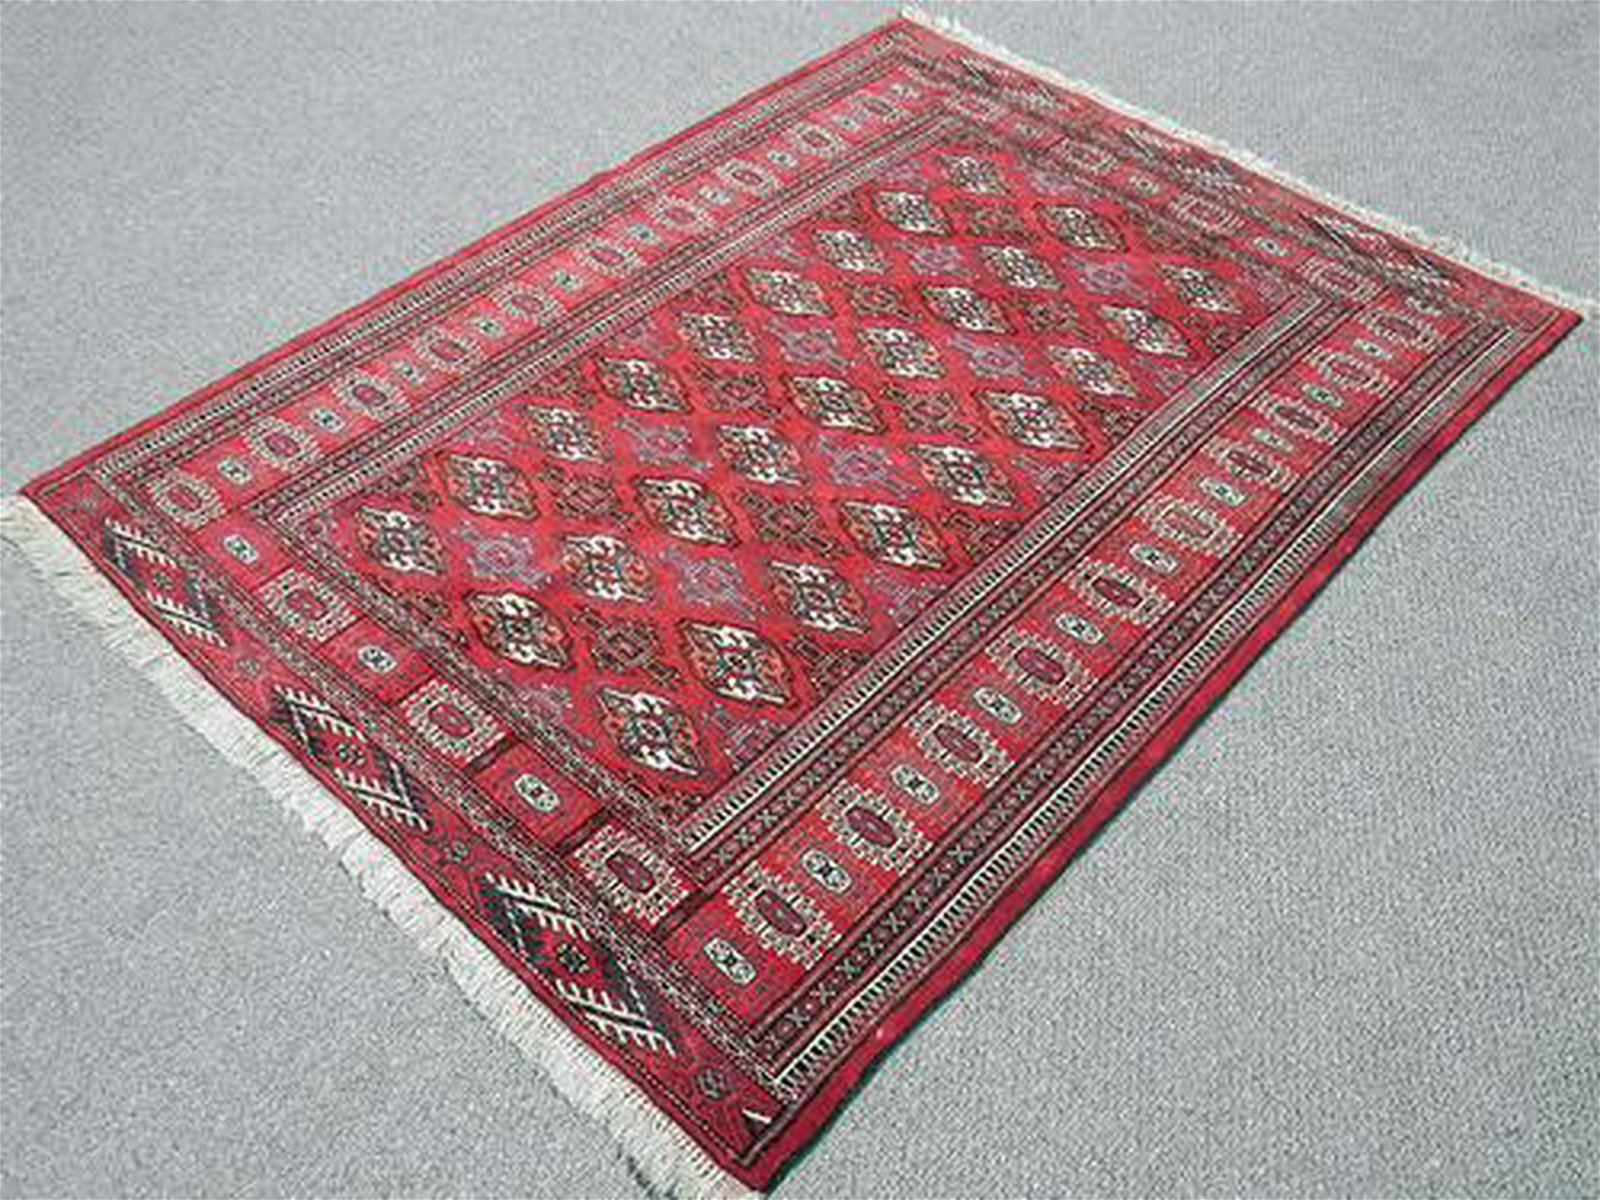 Marvelous High Quality Persian Turkmen 4.7 X 6.0